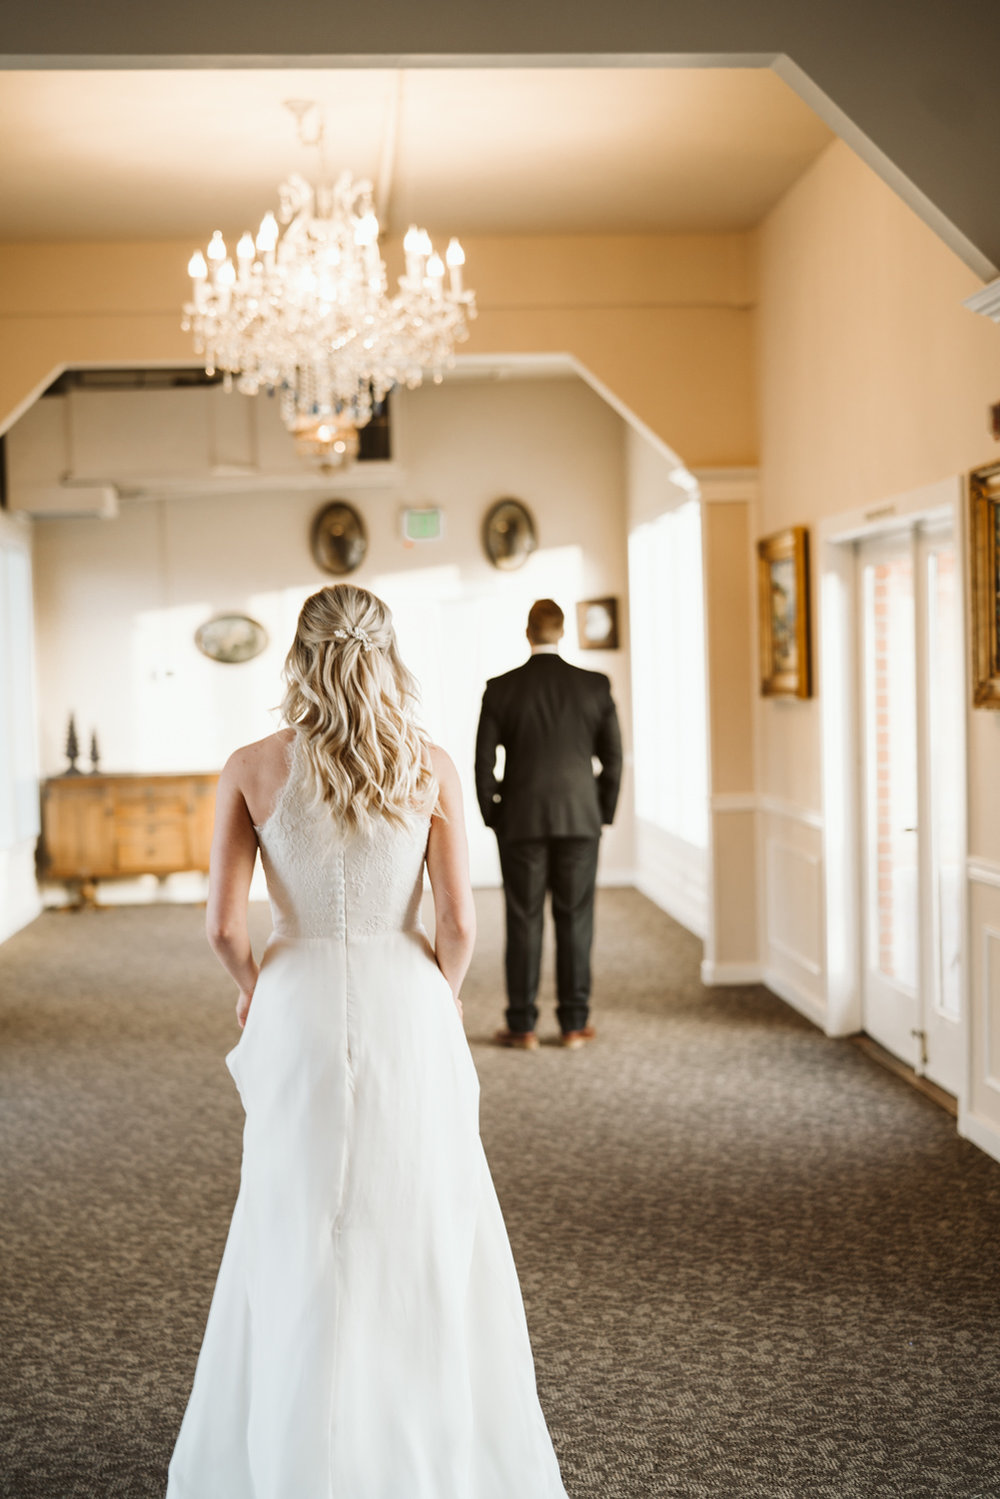 wedding day first look | bride & groom photos | hollywood school house woodinville, wa | april yentas photography | photographer & website designer